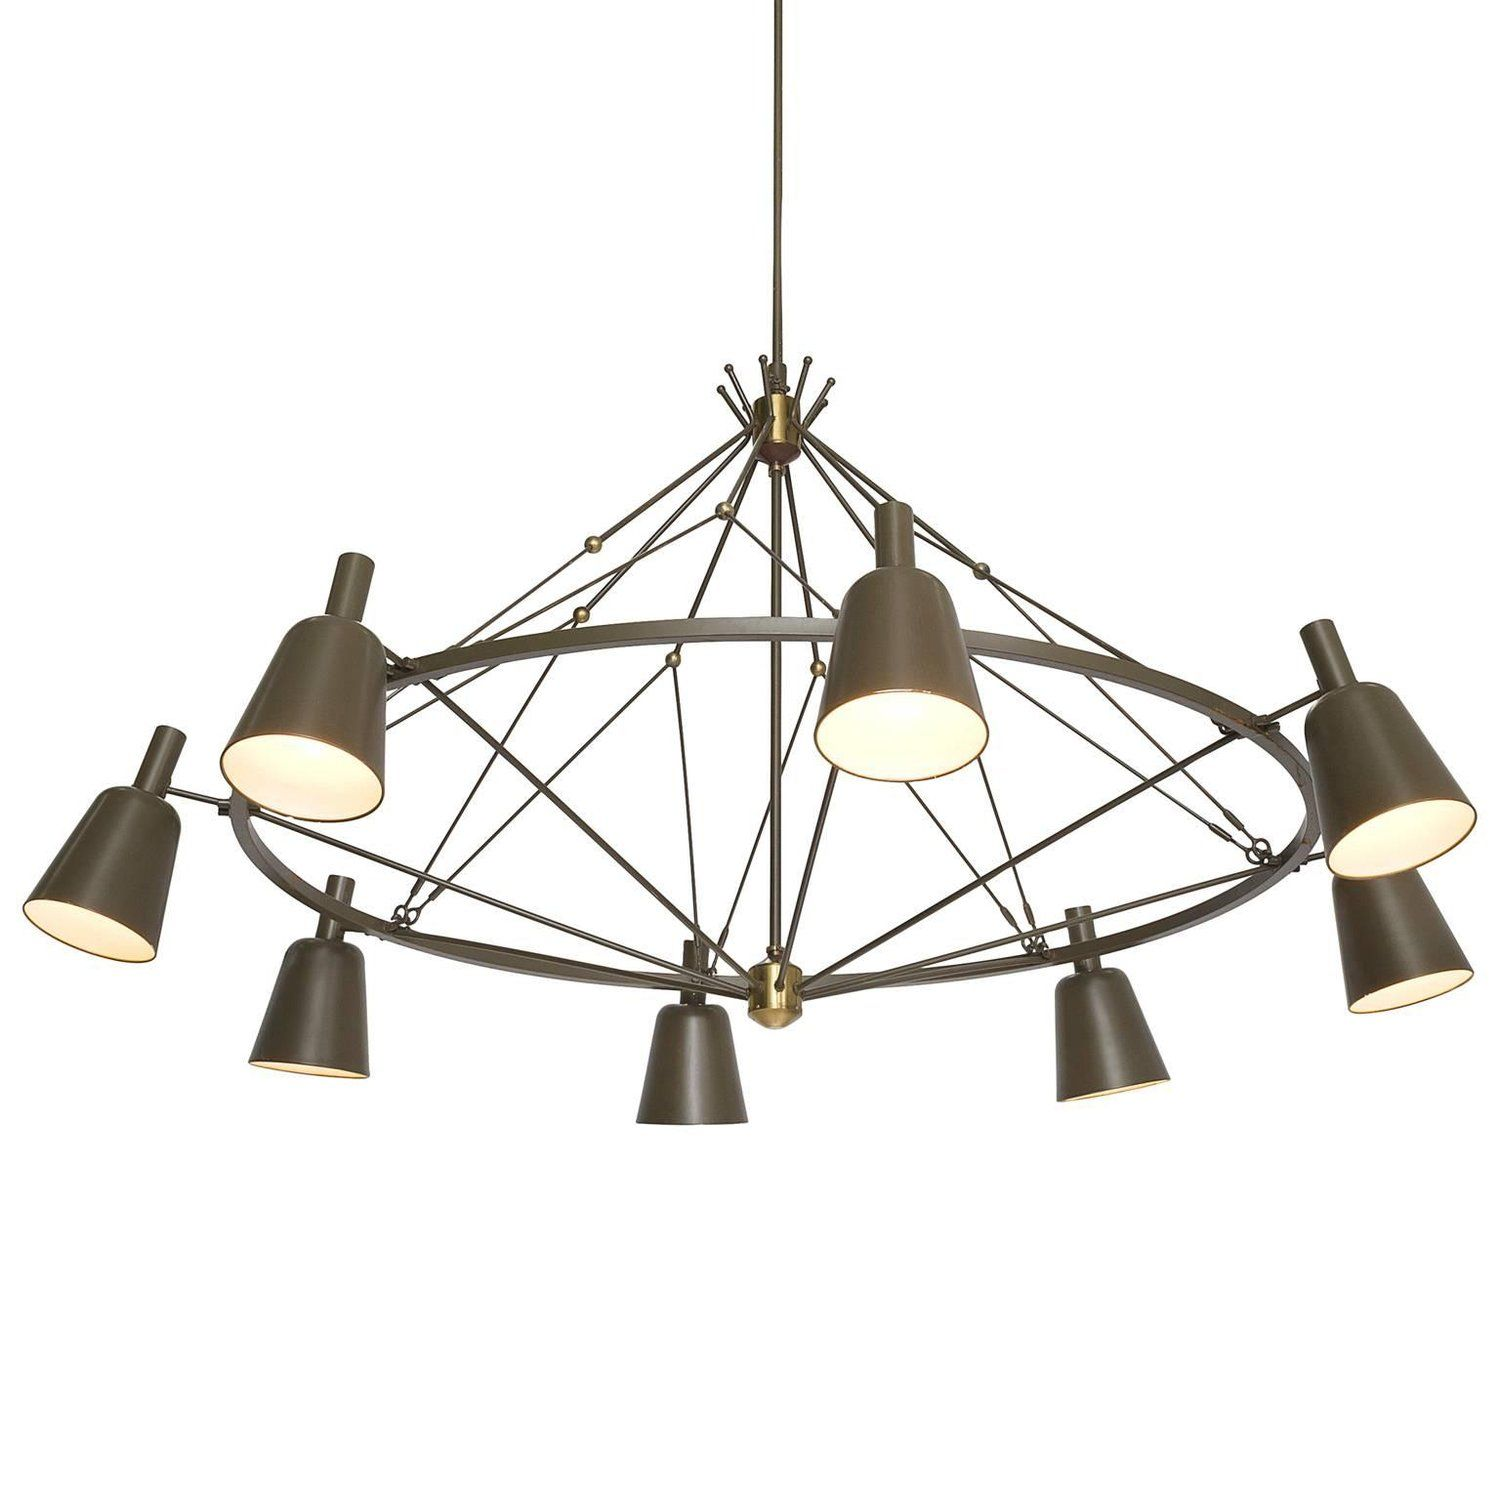 Large Dutch Chandelier, Circa 1950